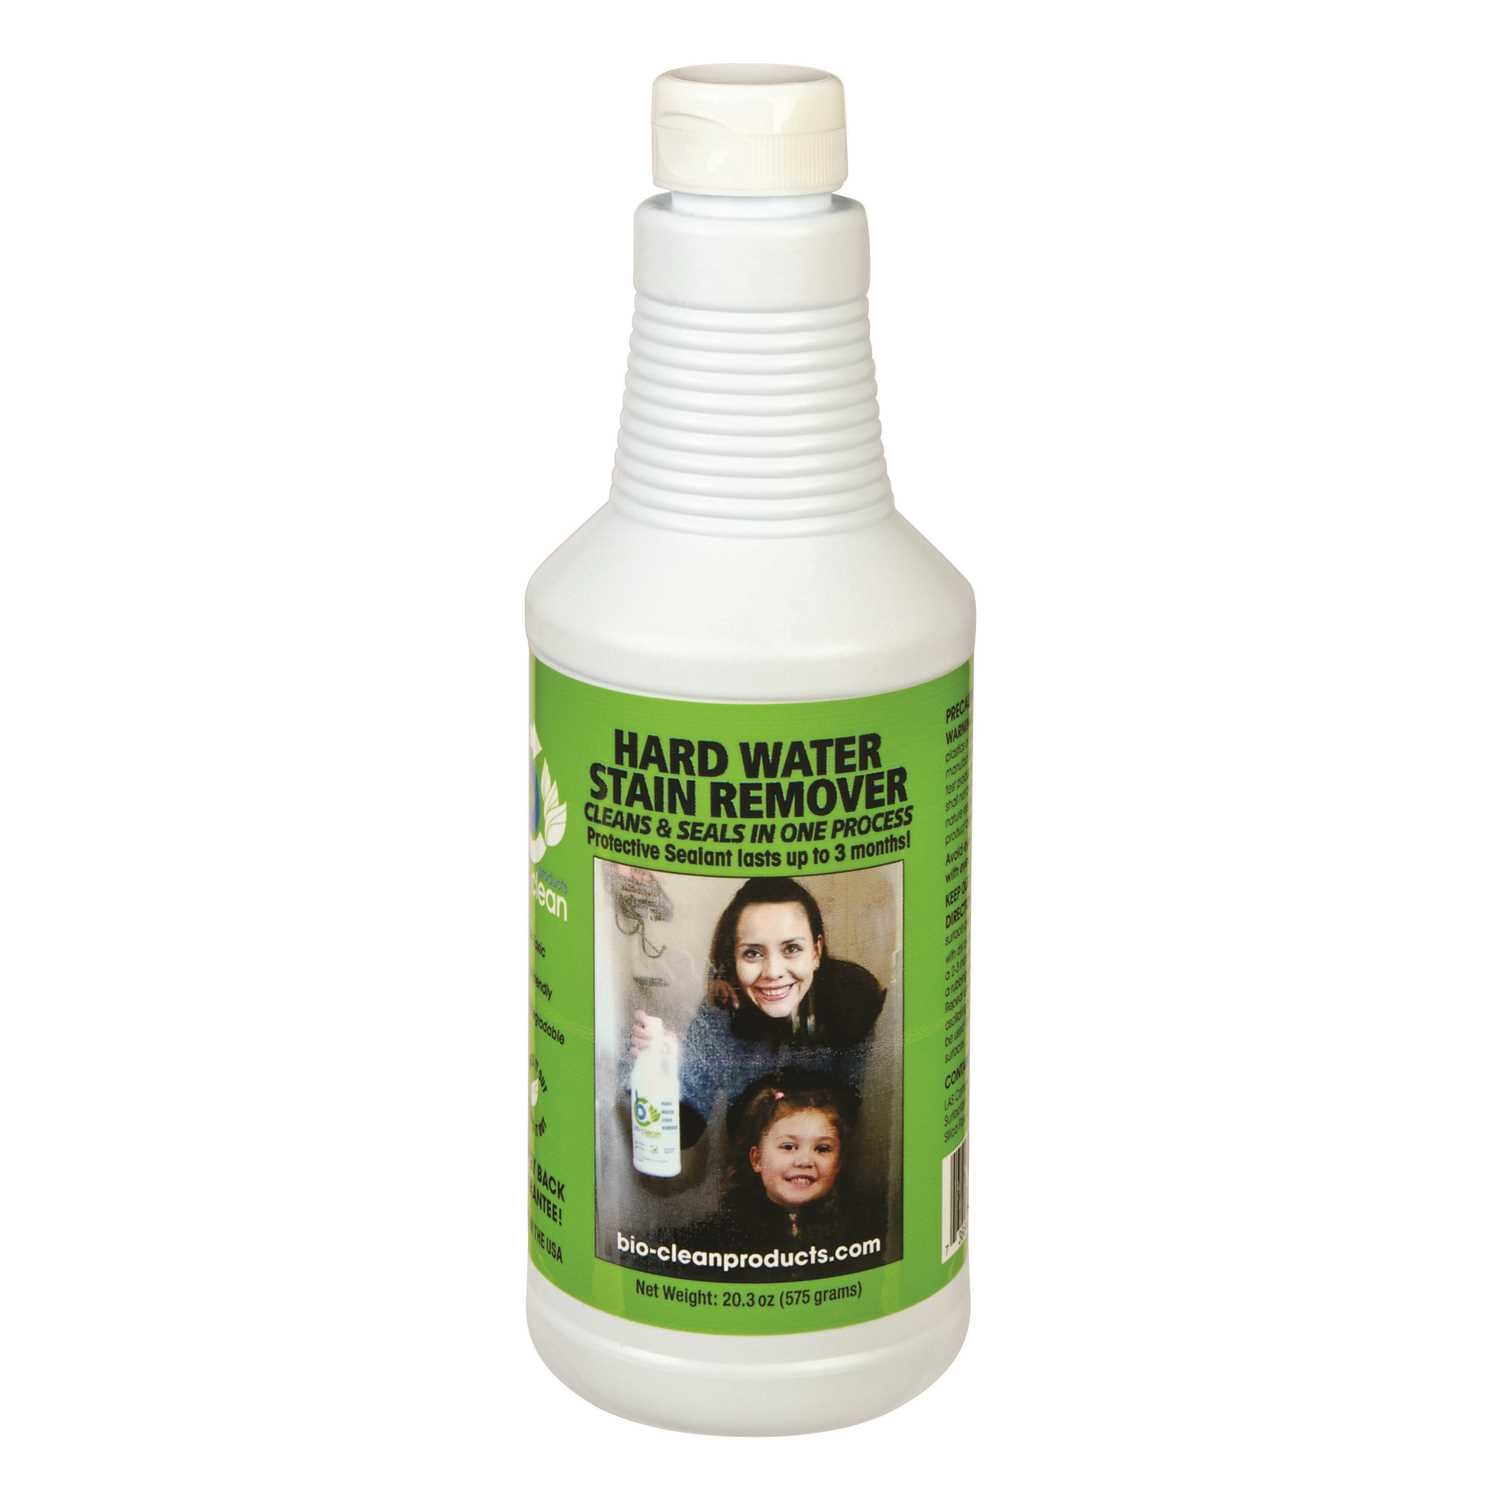 Bio-Clean Products Bio-Clean Hard Water Stain Remover